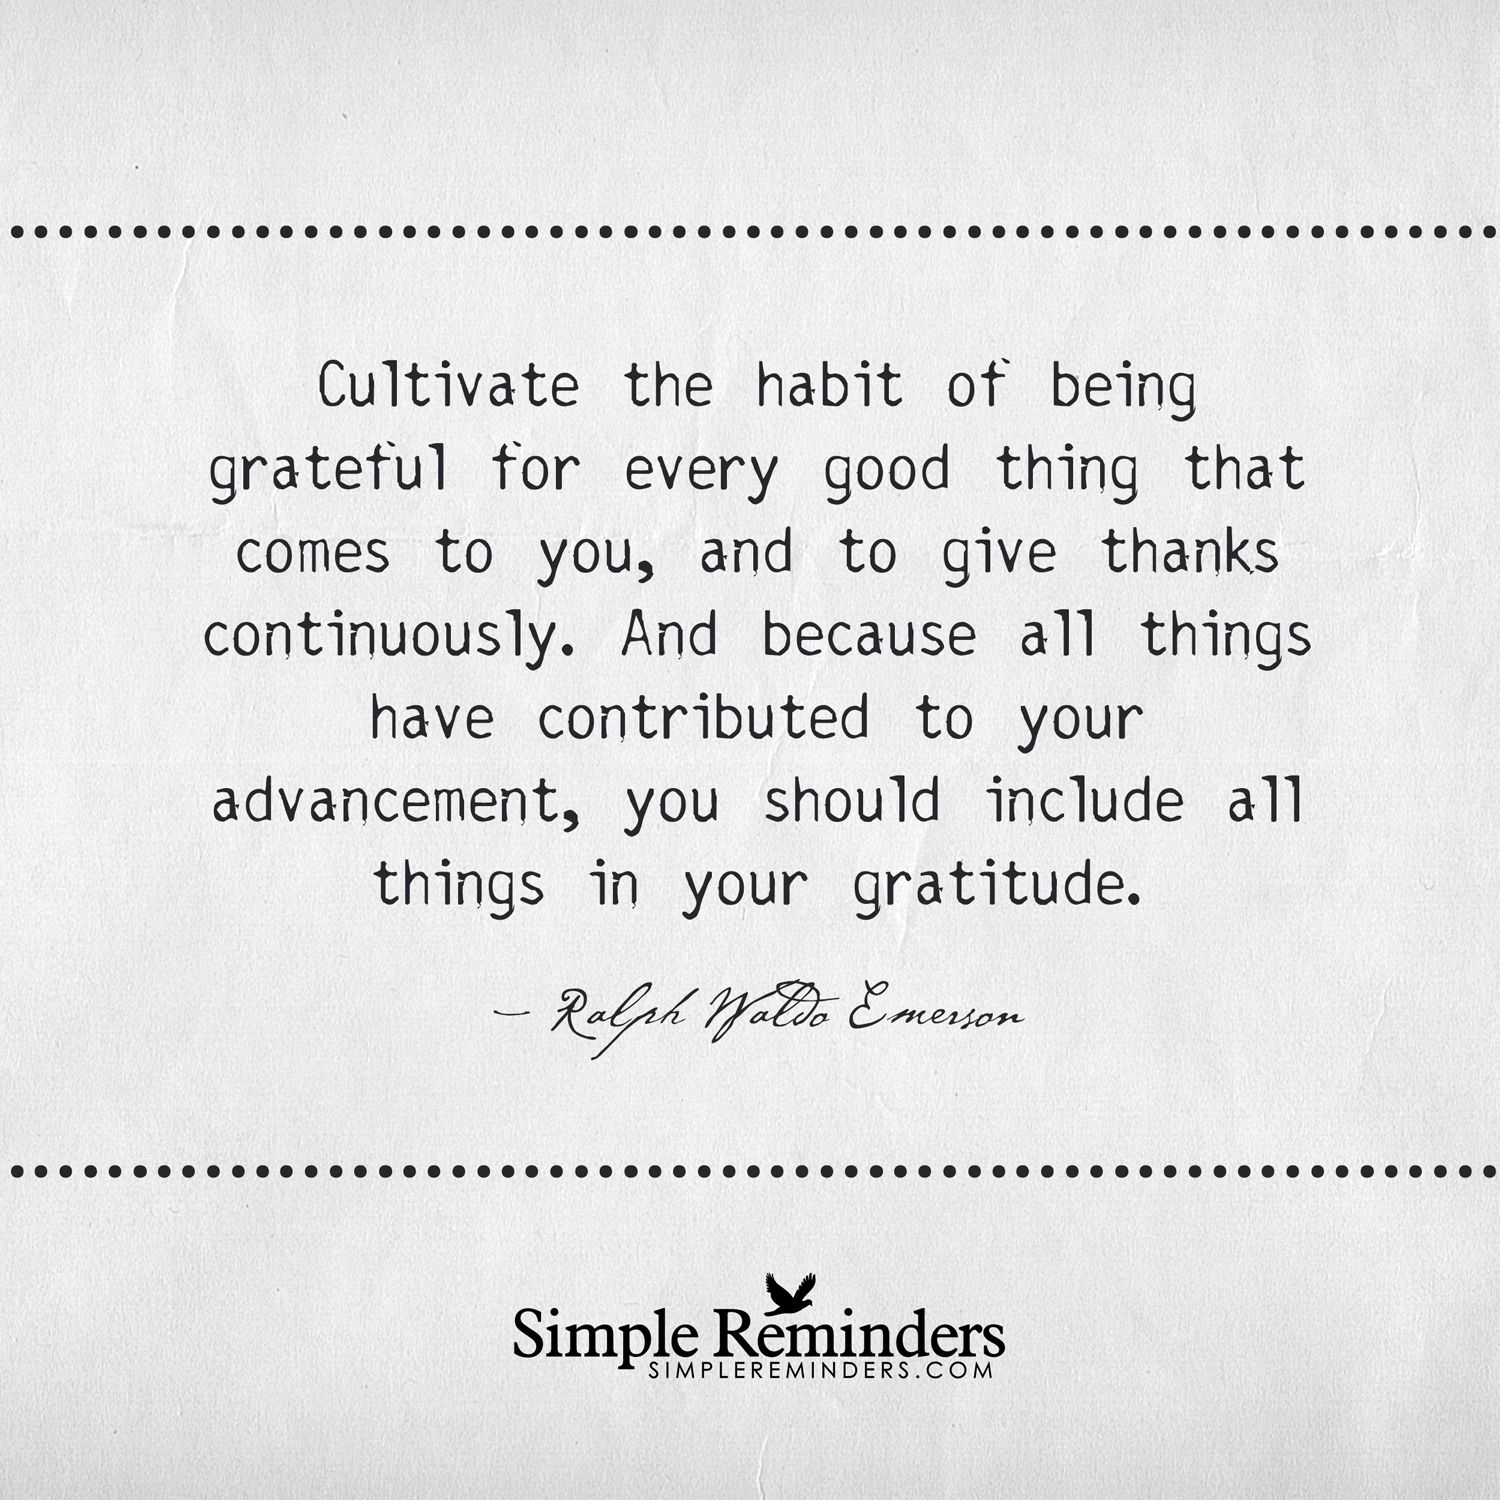 simple reminders new posts for life quotes quote by ralph waldo emerson cultivate the habit of being grateful for every good thing that comes to you and to give thanks continuously